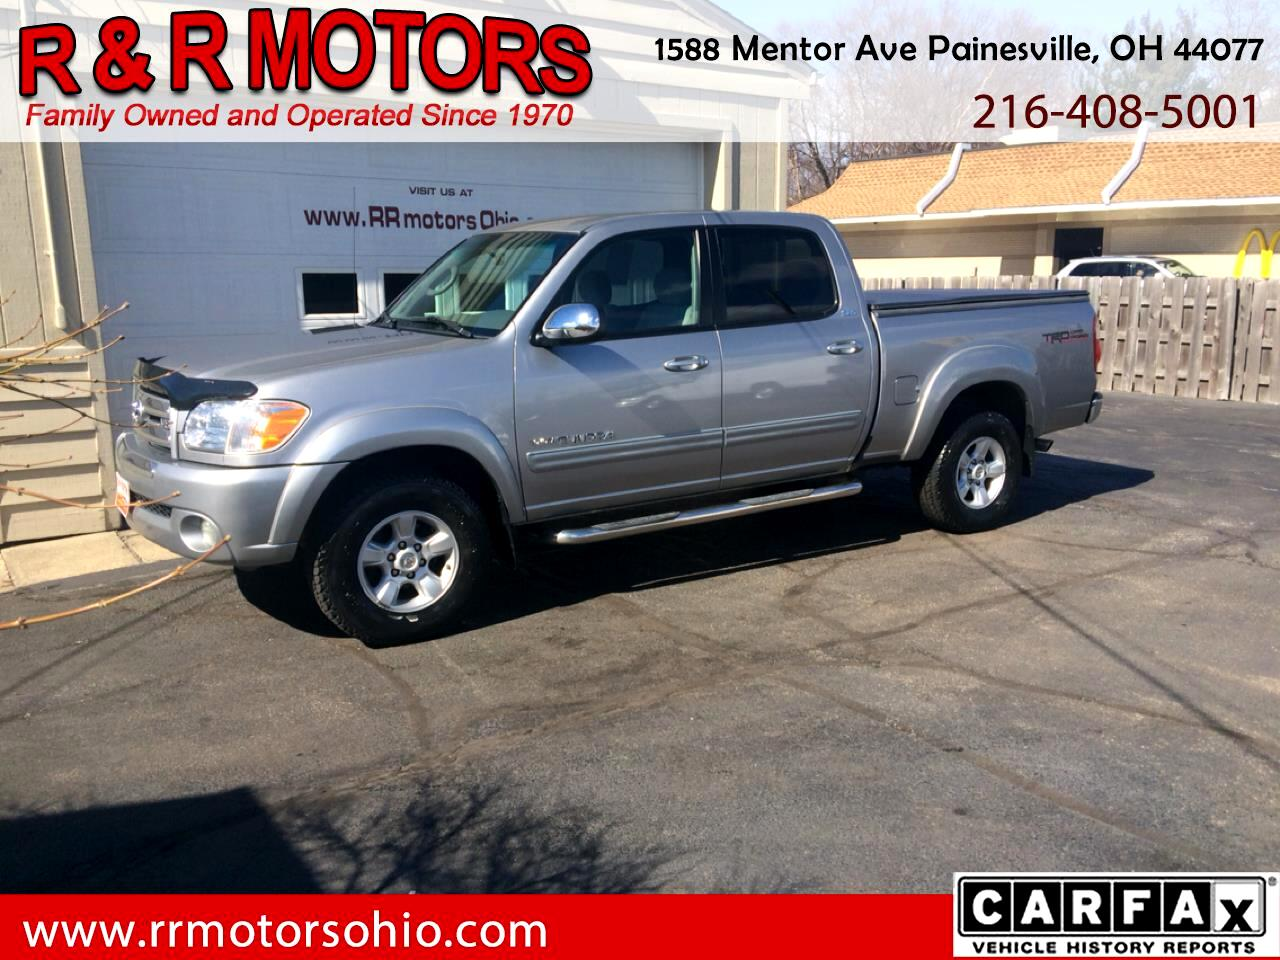 2006 Toyota Tundra SR5 Double Cab 4WD